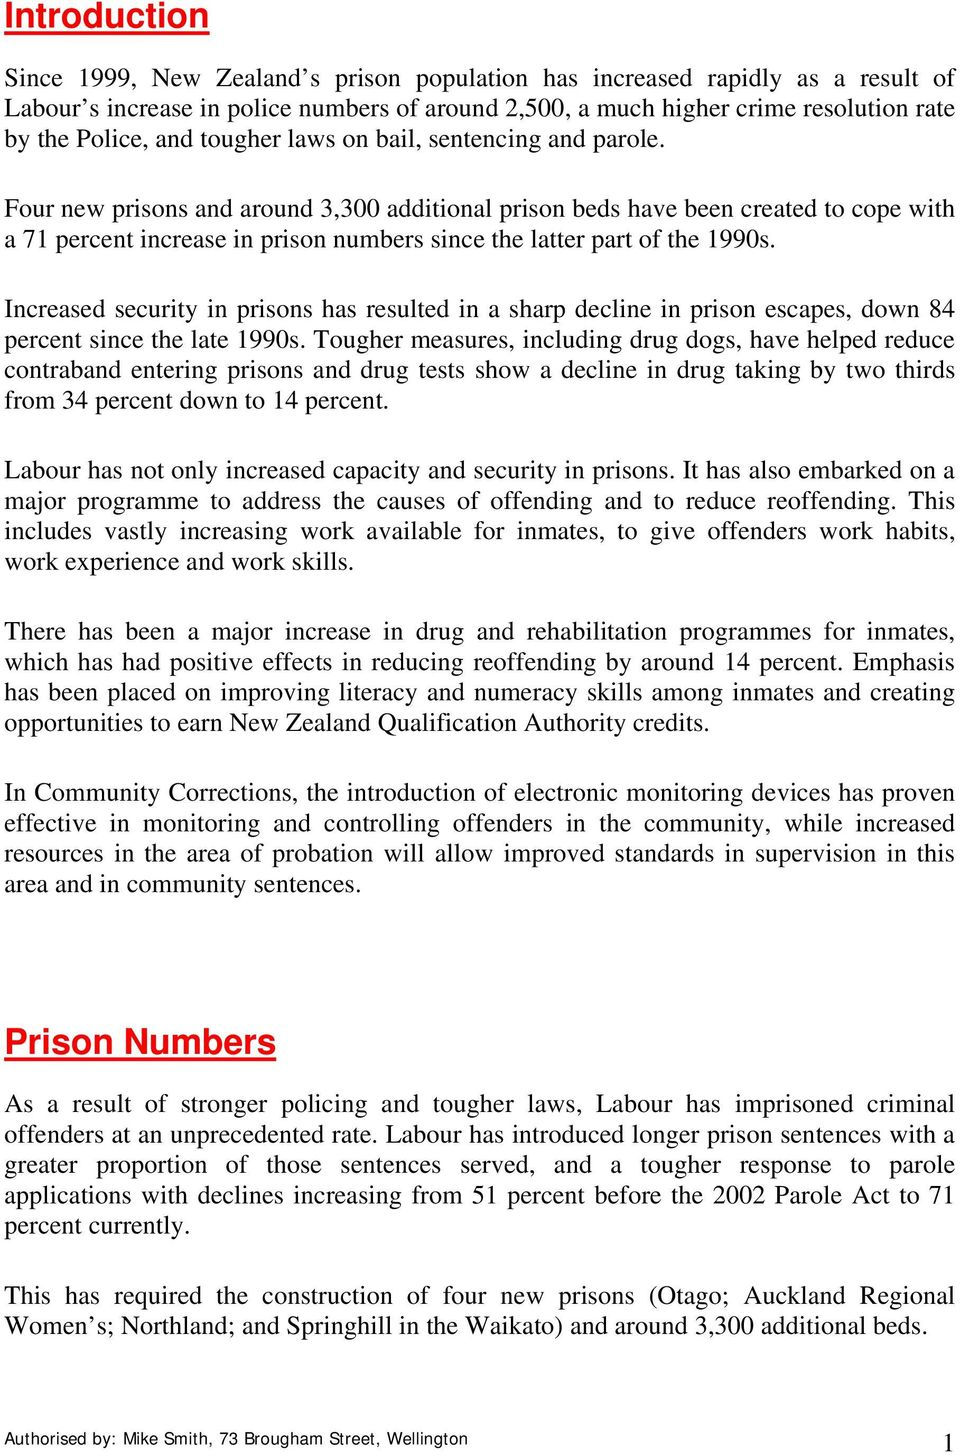 Four new prisons and around 3,300 additional prison beds have been created to cope with a 71 percent increase in prison numbers since the latter part of the 1990s.